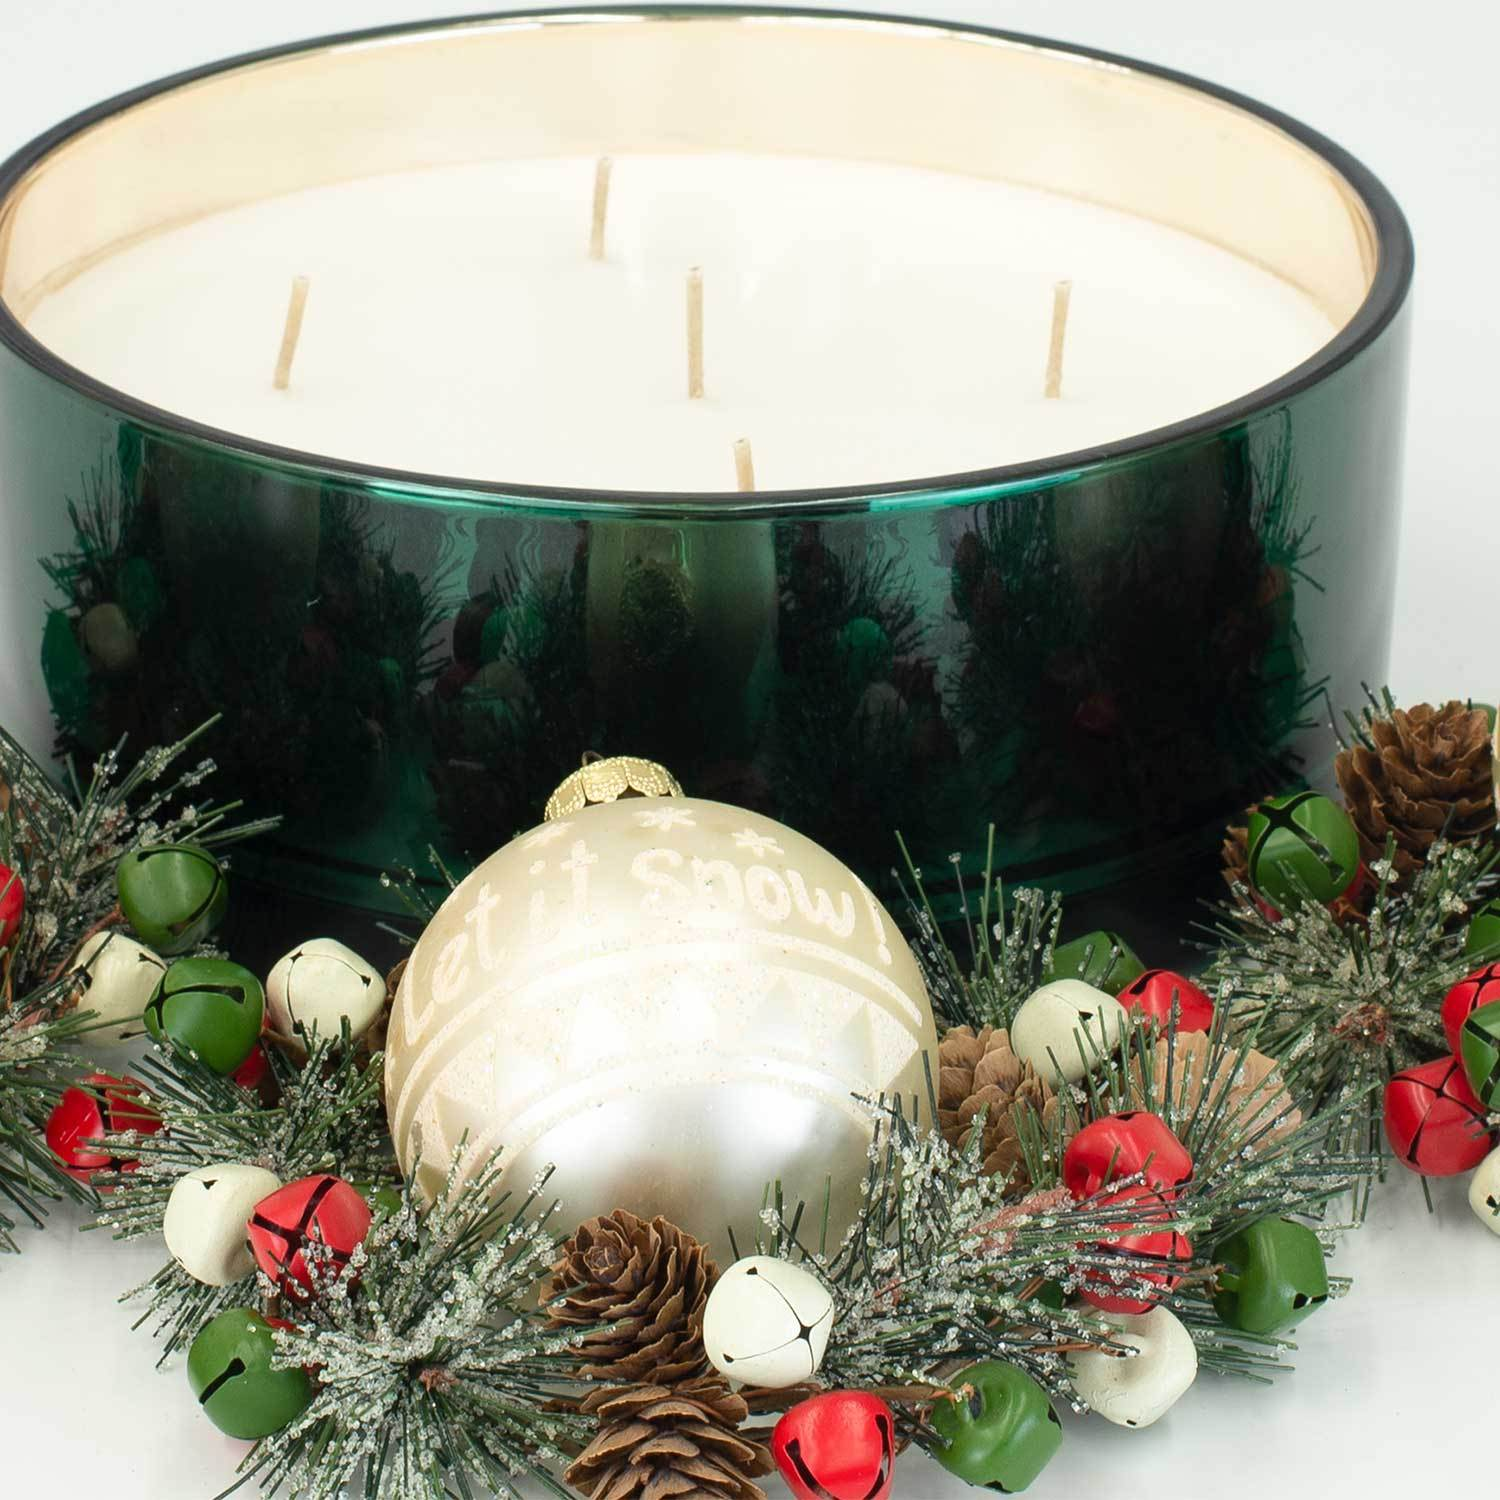 Winter Balsam Luxury 36oz Green Glass Candle